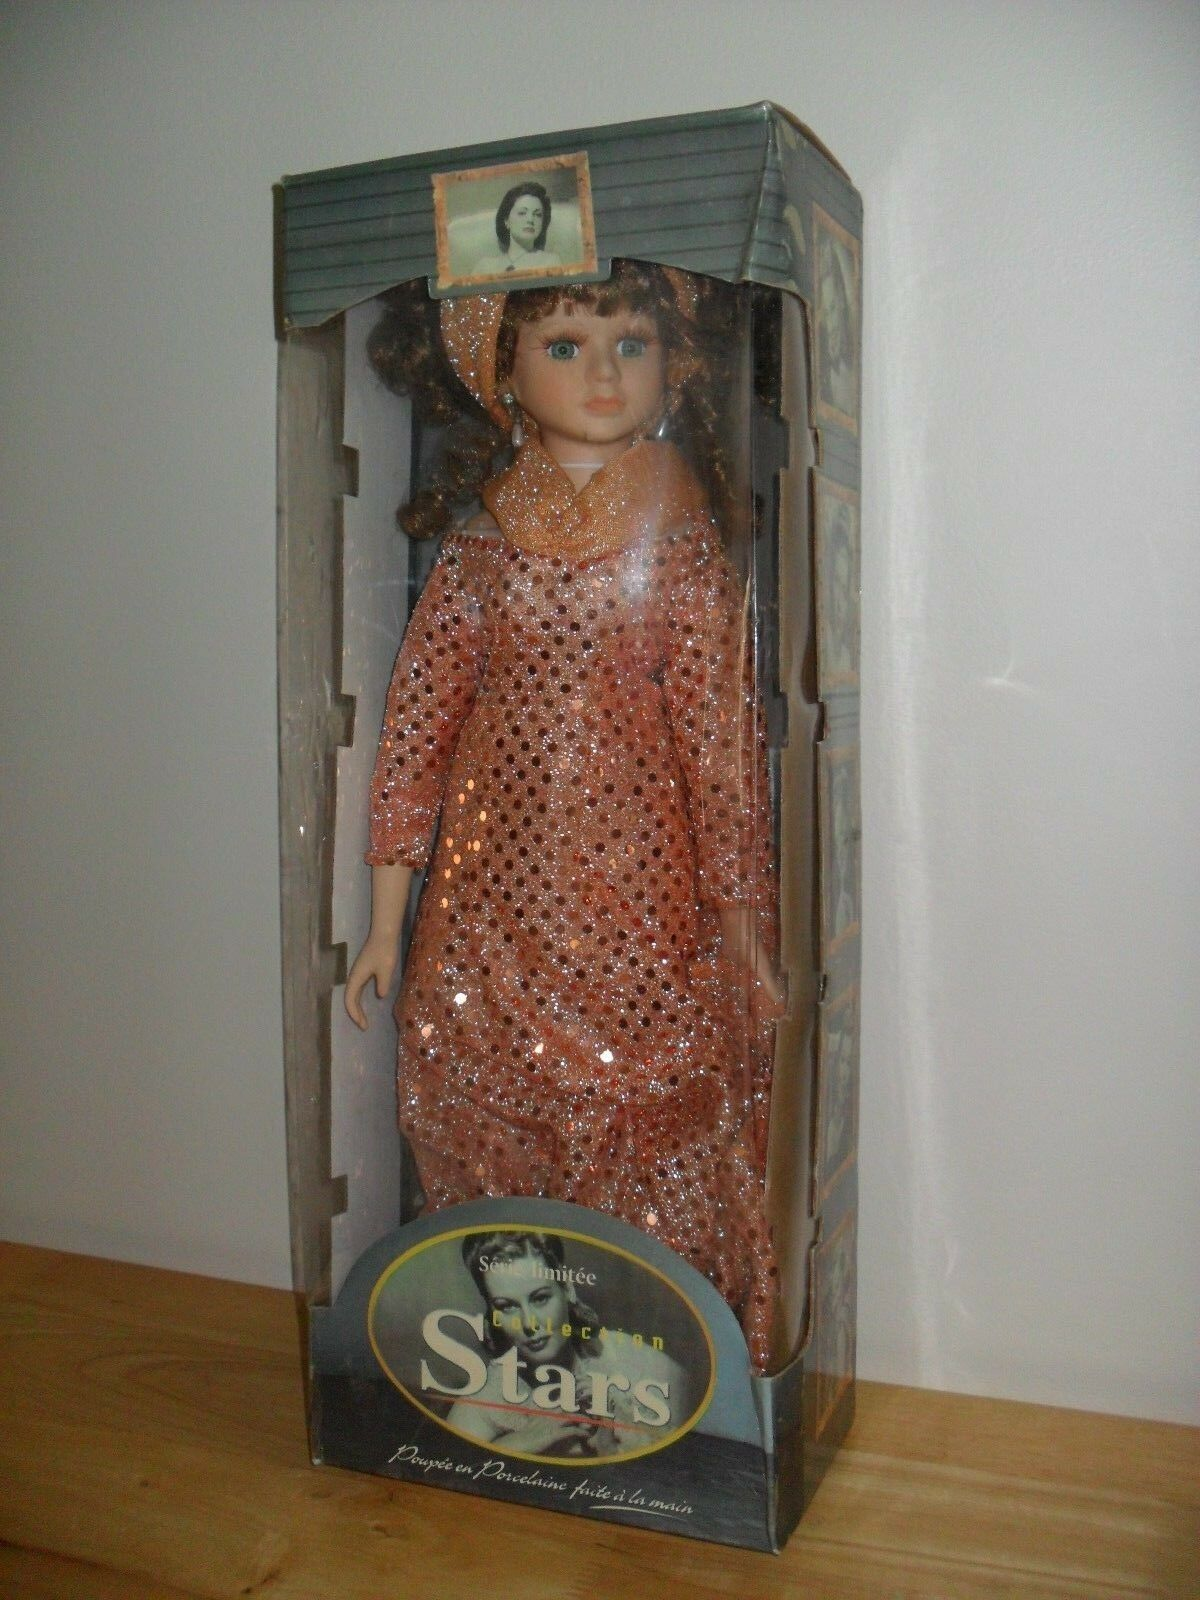 Rare Vintage porcelain doll Stars collection made by hand limited edition French